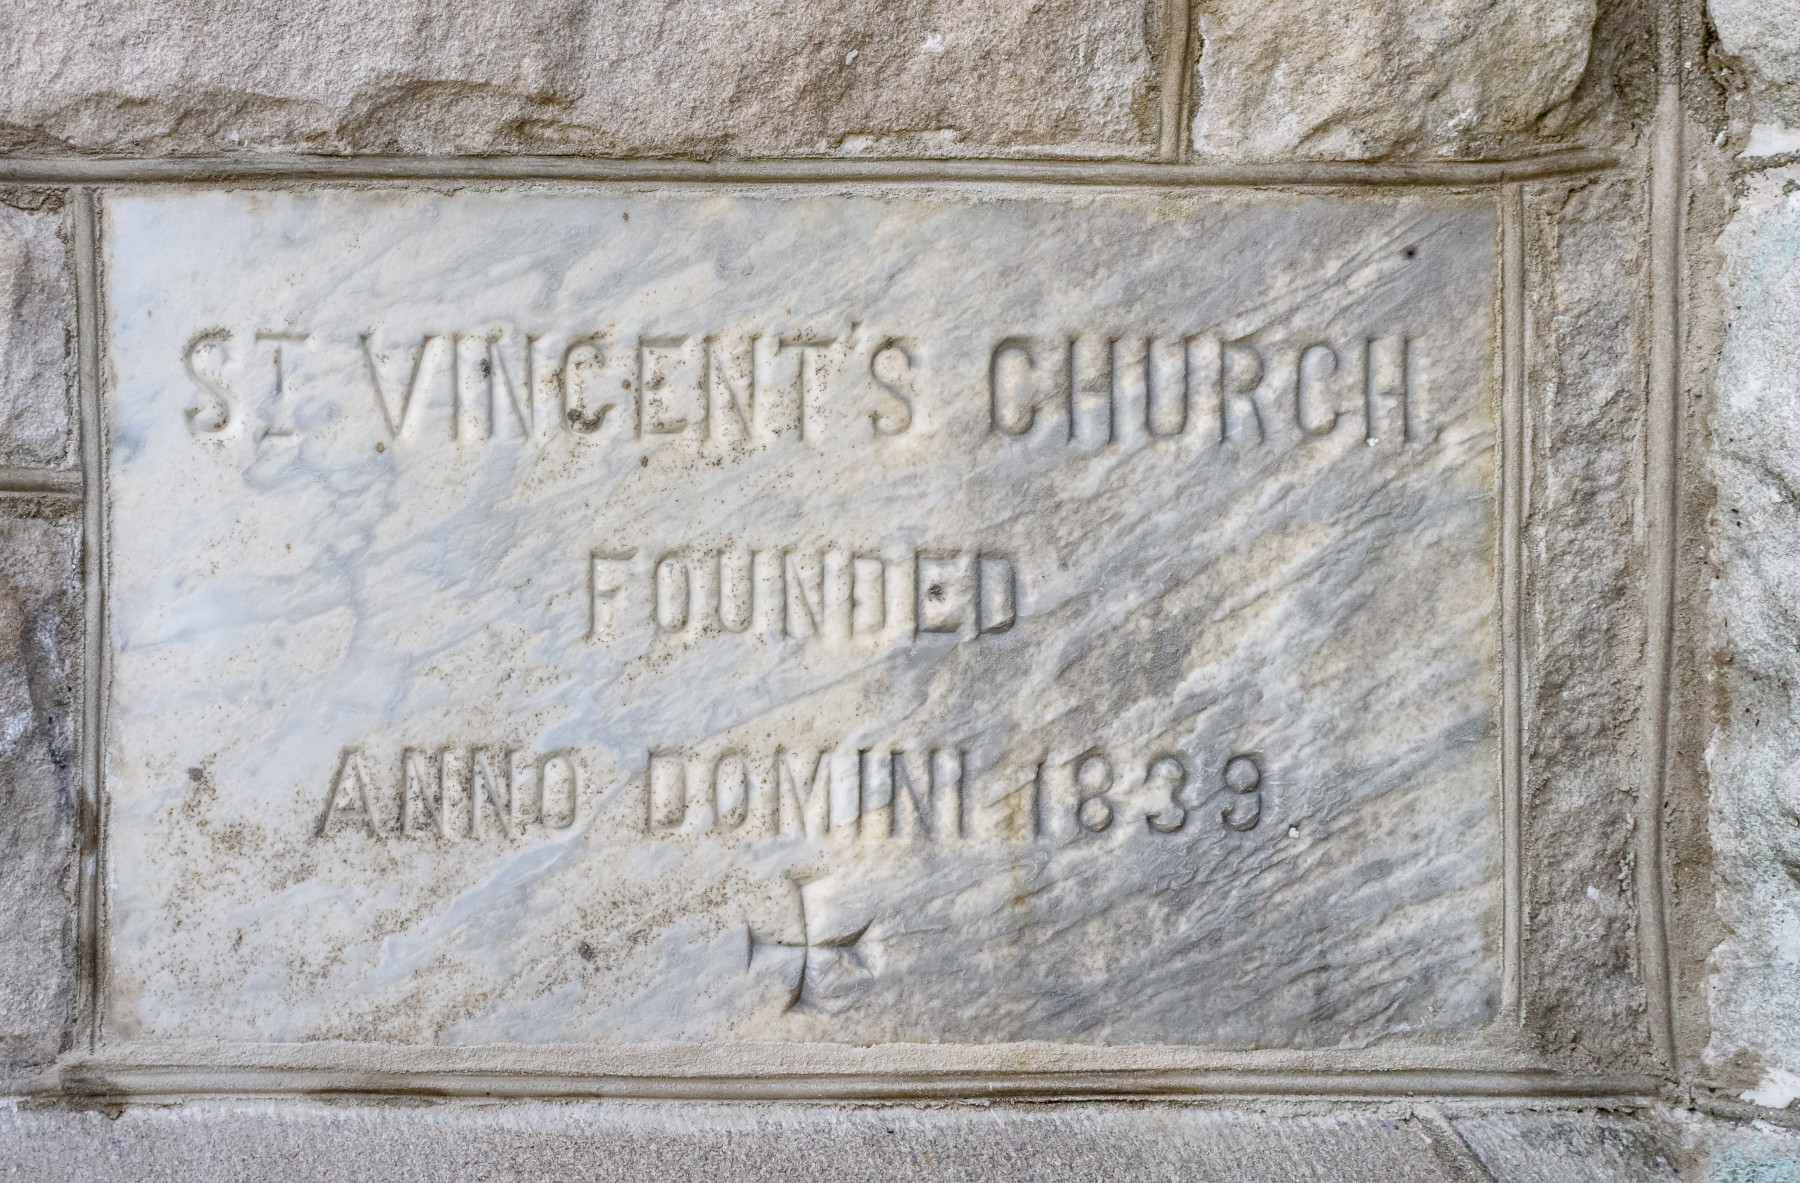 St. Vincent's Madison NJ founded 1839